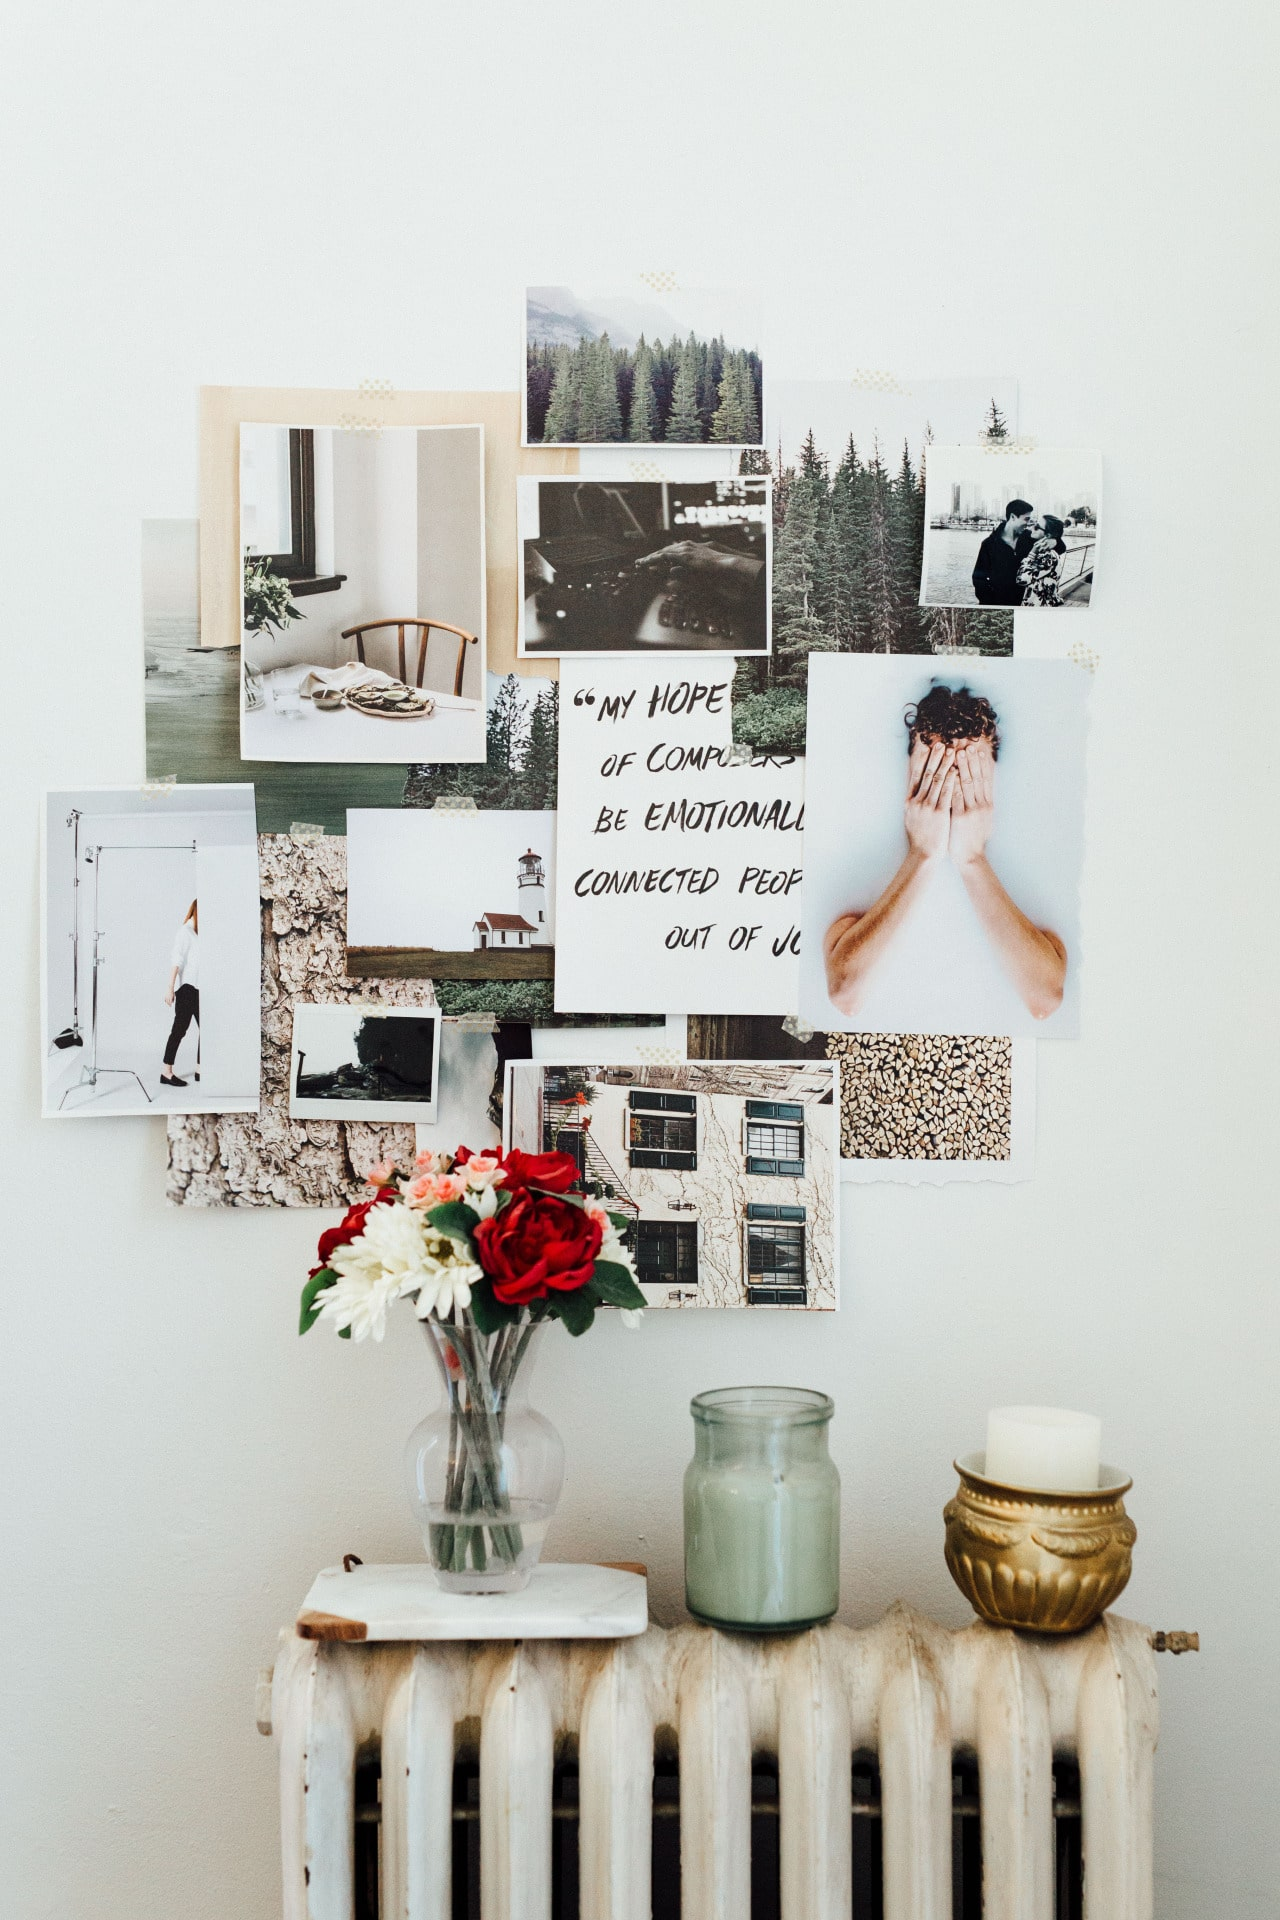 Using Mood Boards To Develop Your Brand Notes On Design: home decor pinterest boards to follow